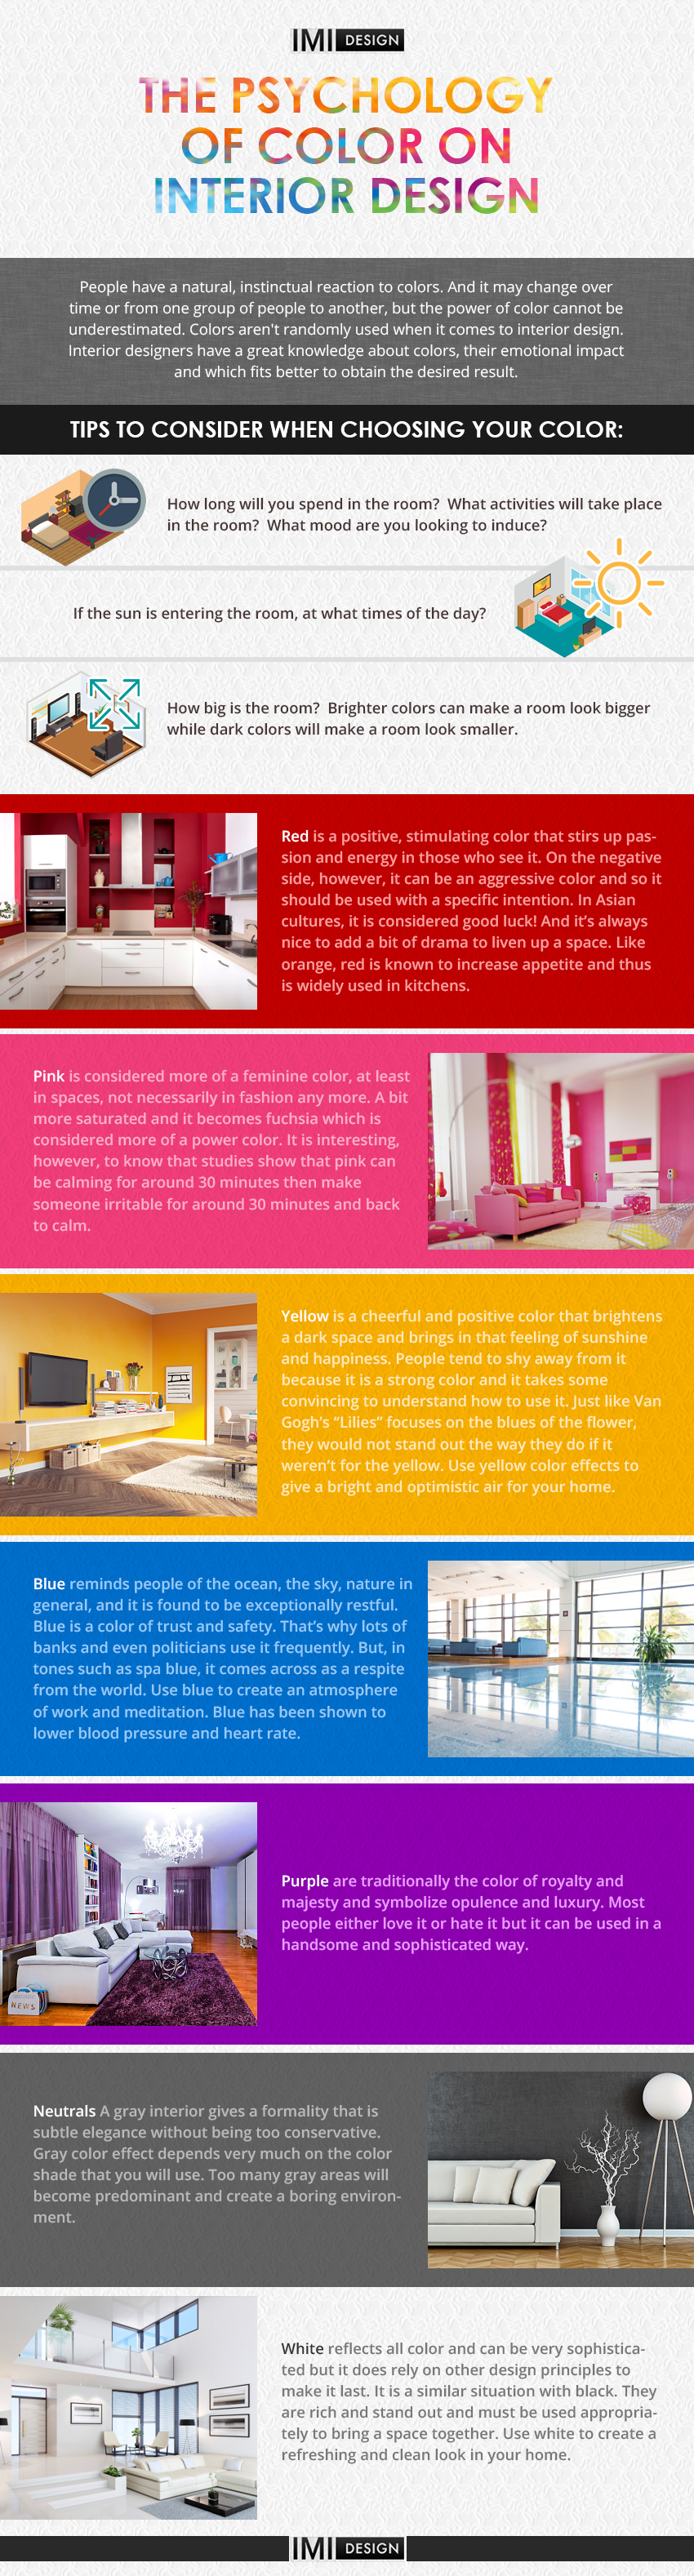 the-psychology-of-color-on-interior-design-infographic